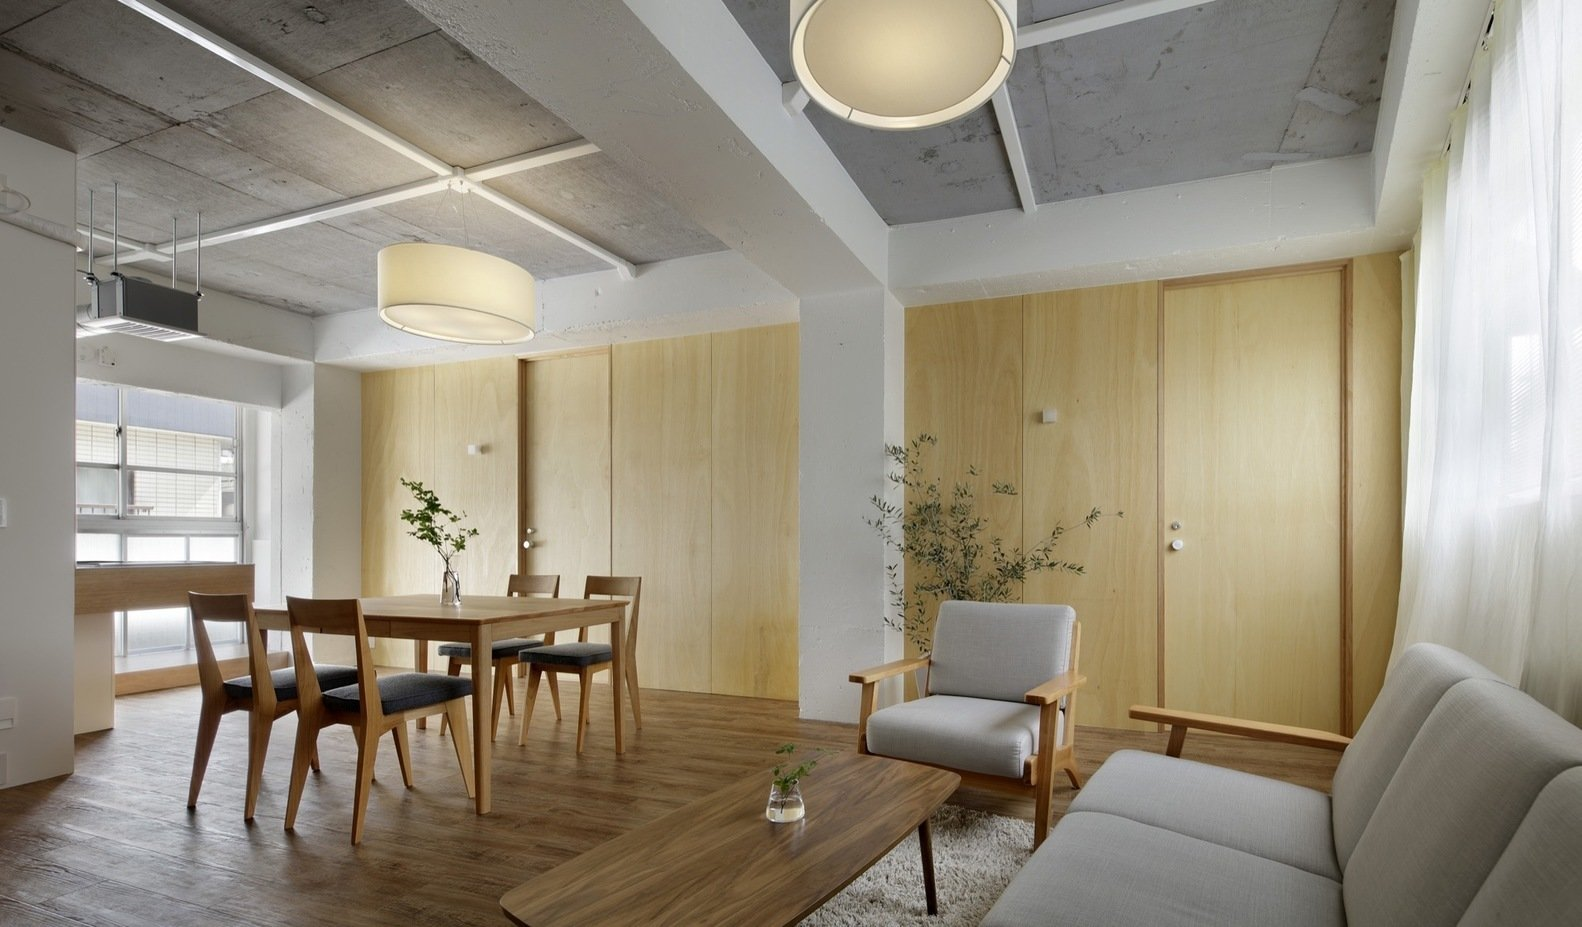 Photo 1 of 4 in Serviced Apartments in Otsuka by Takashi Nishitani Architects